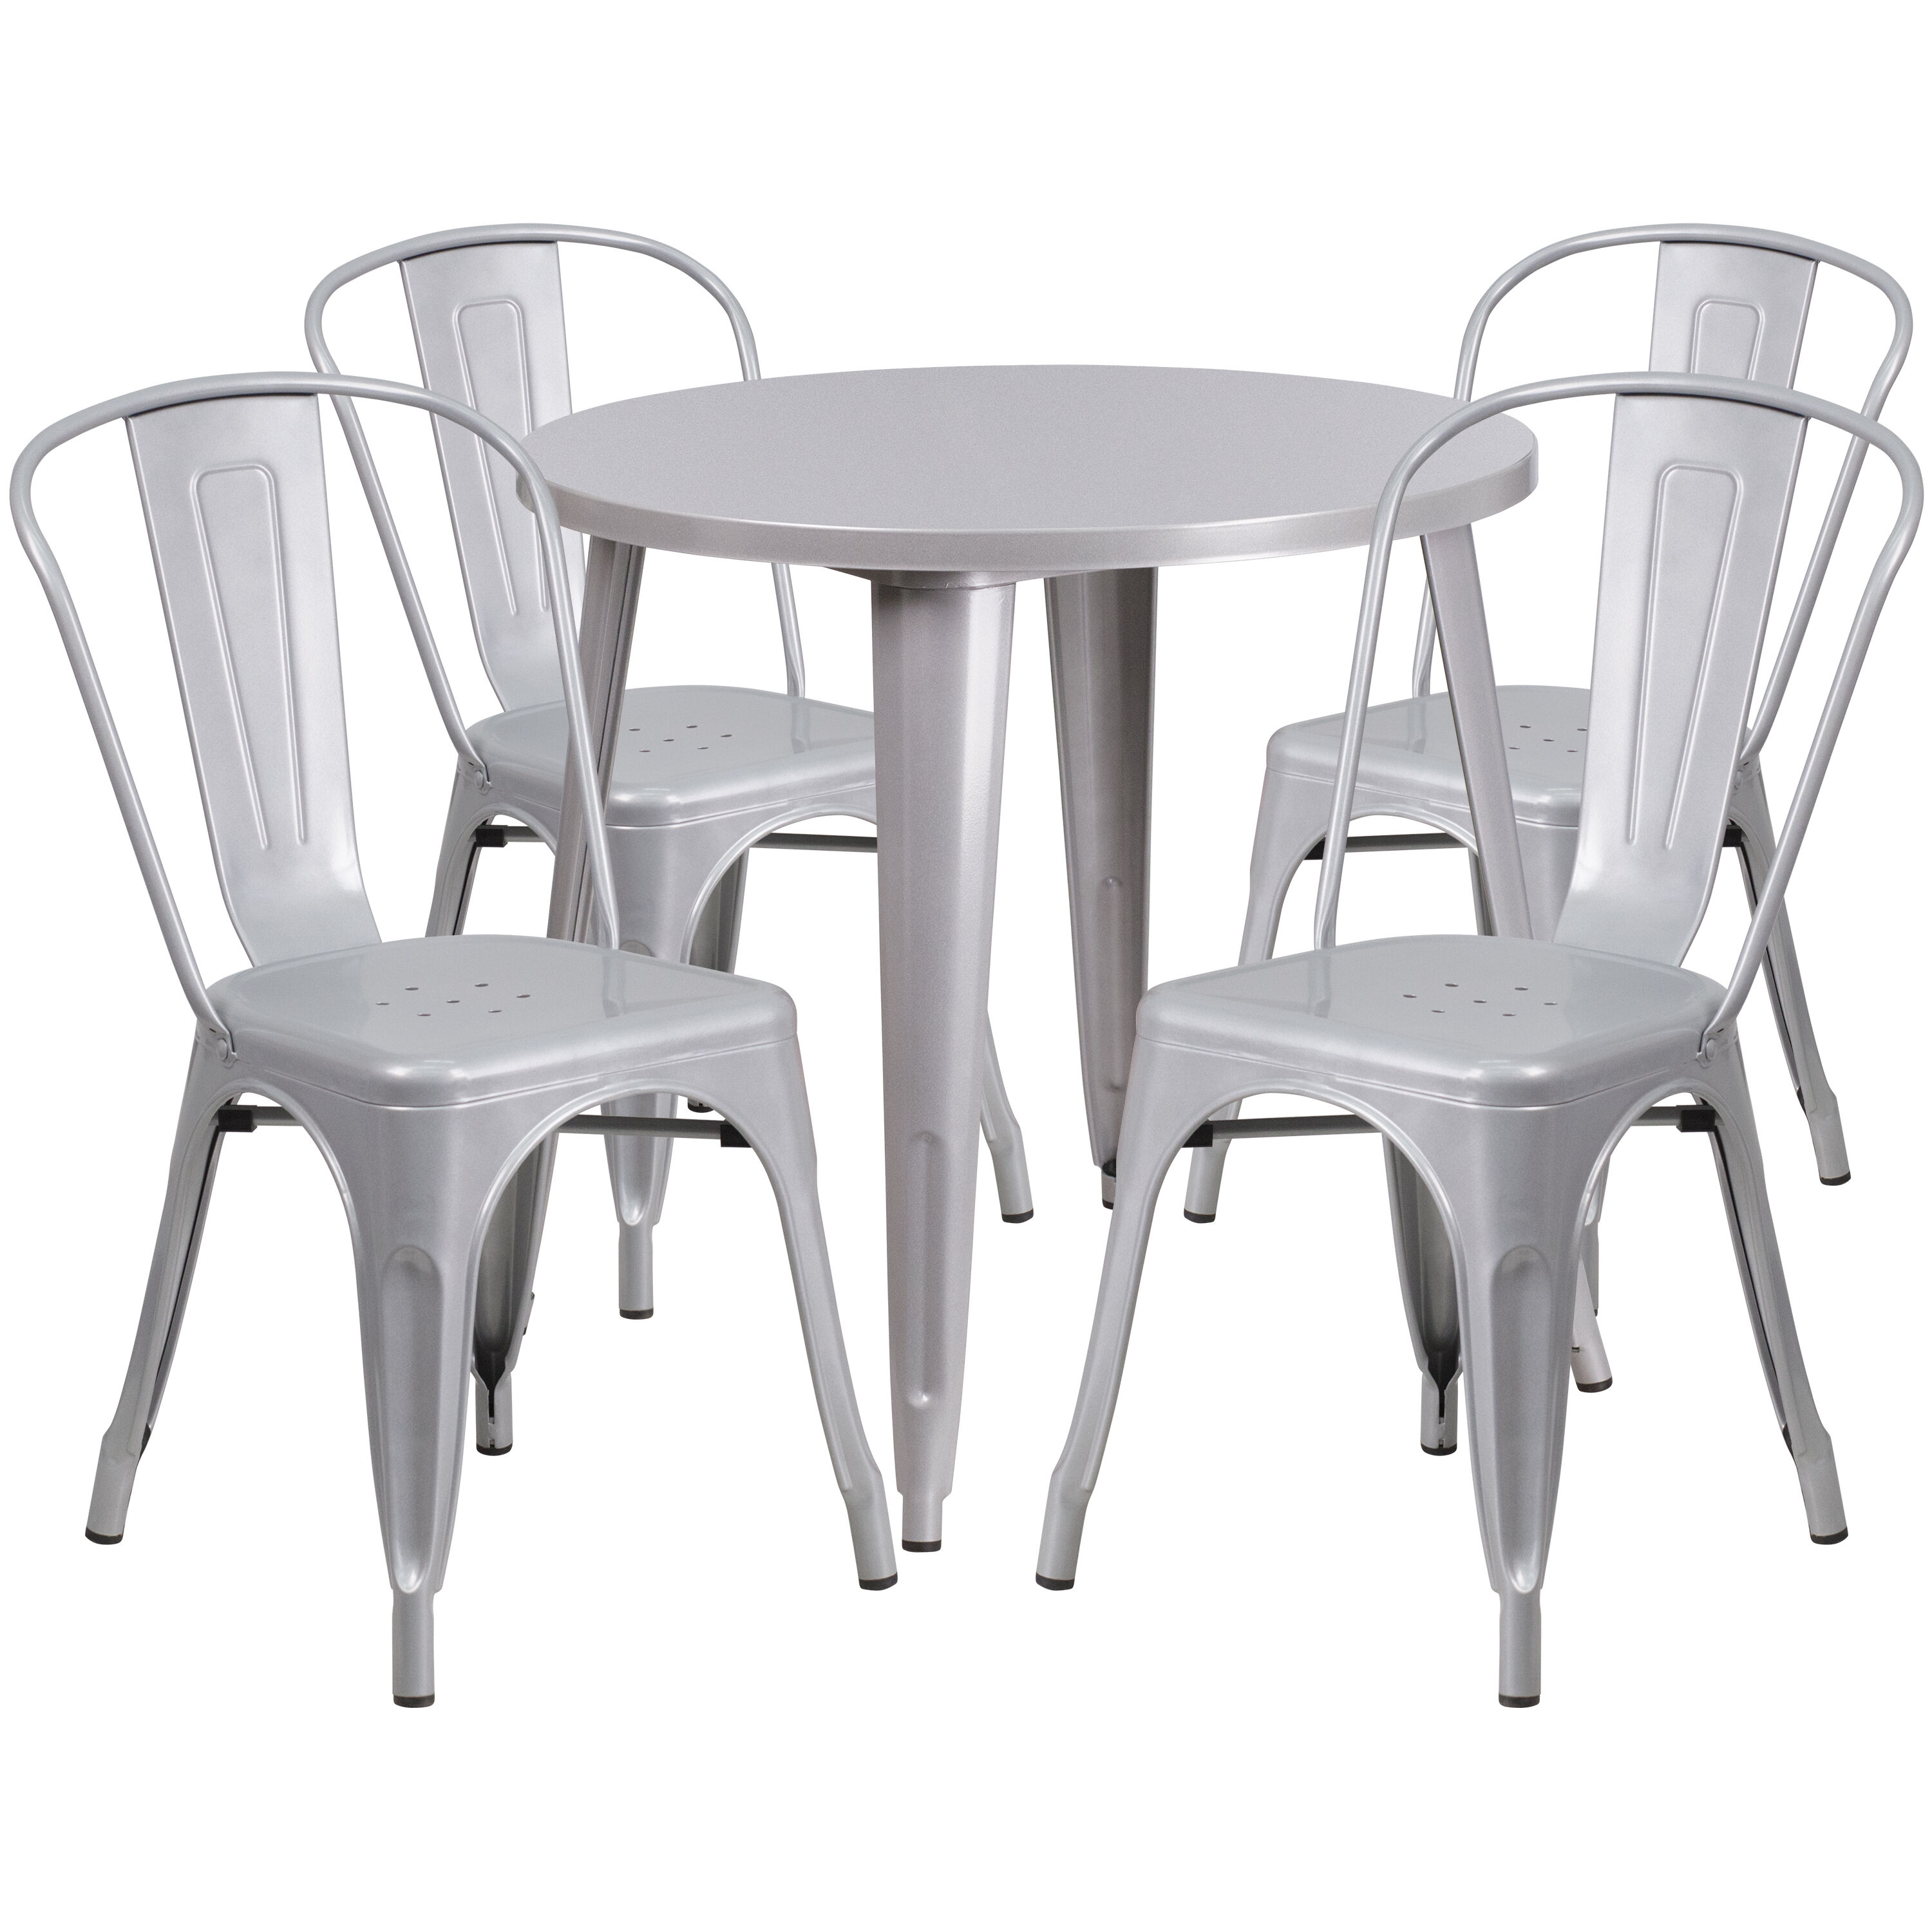 Outdoor Table And Chair Set 30 Round Silver Metal Indoor Outdoor Table Set With 4 Cafe Chairs